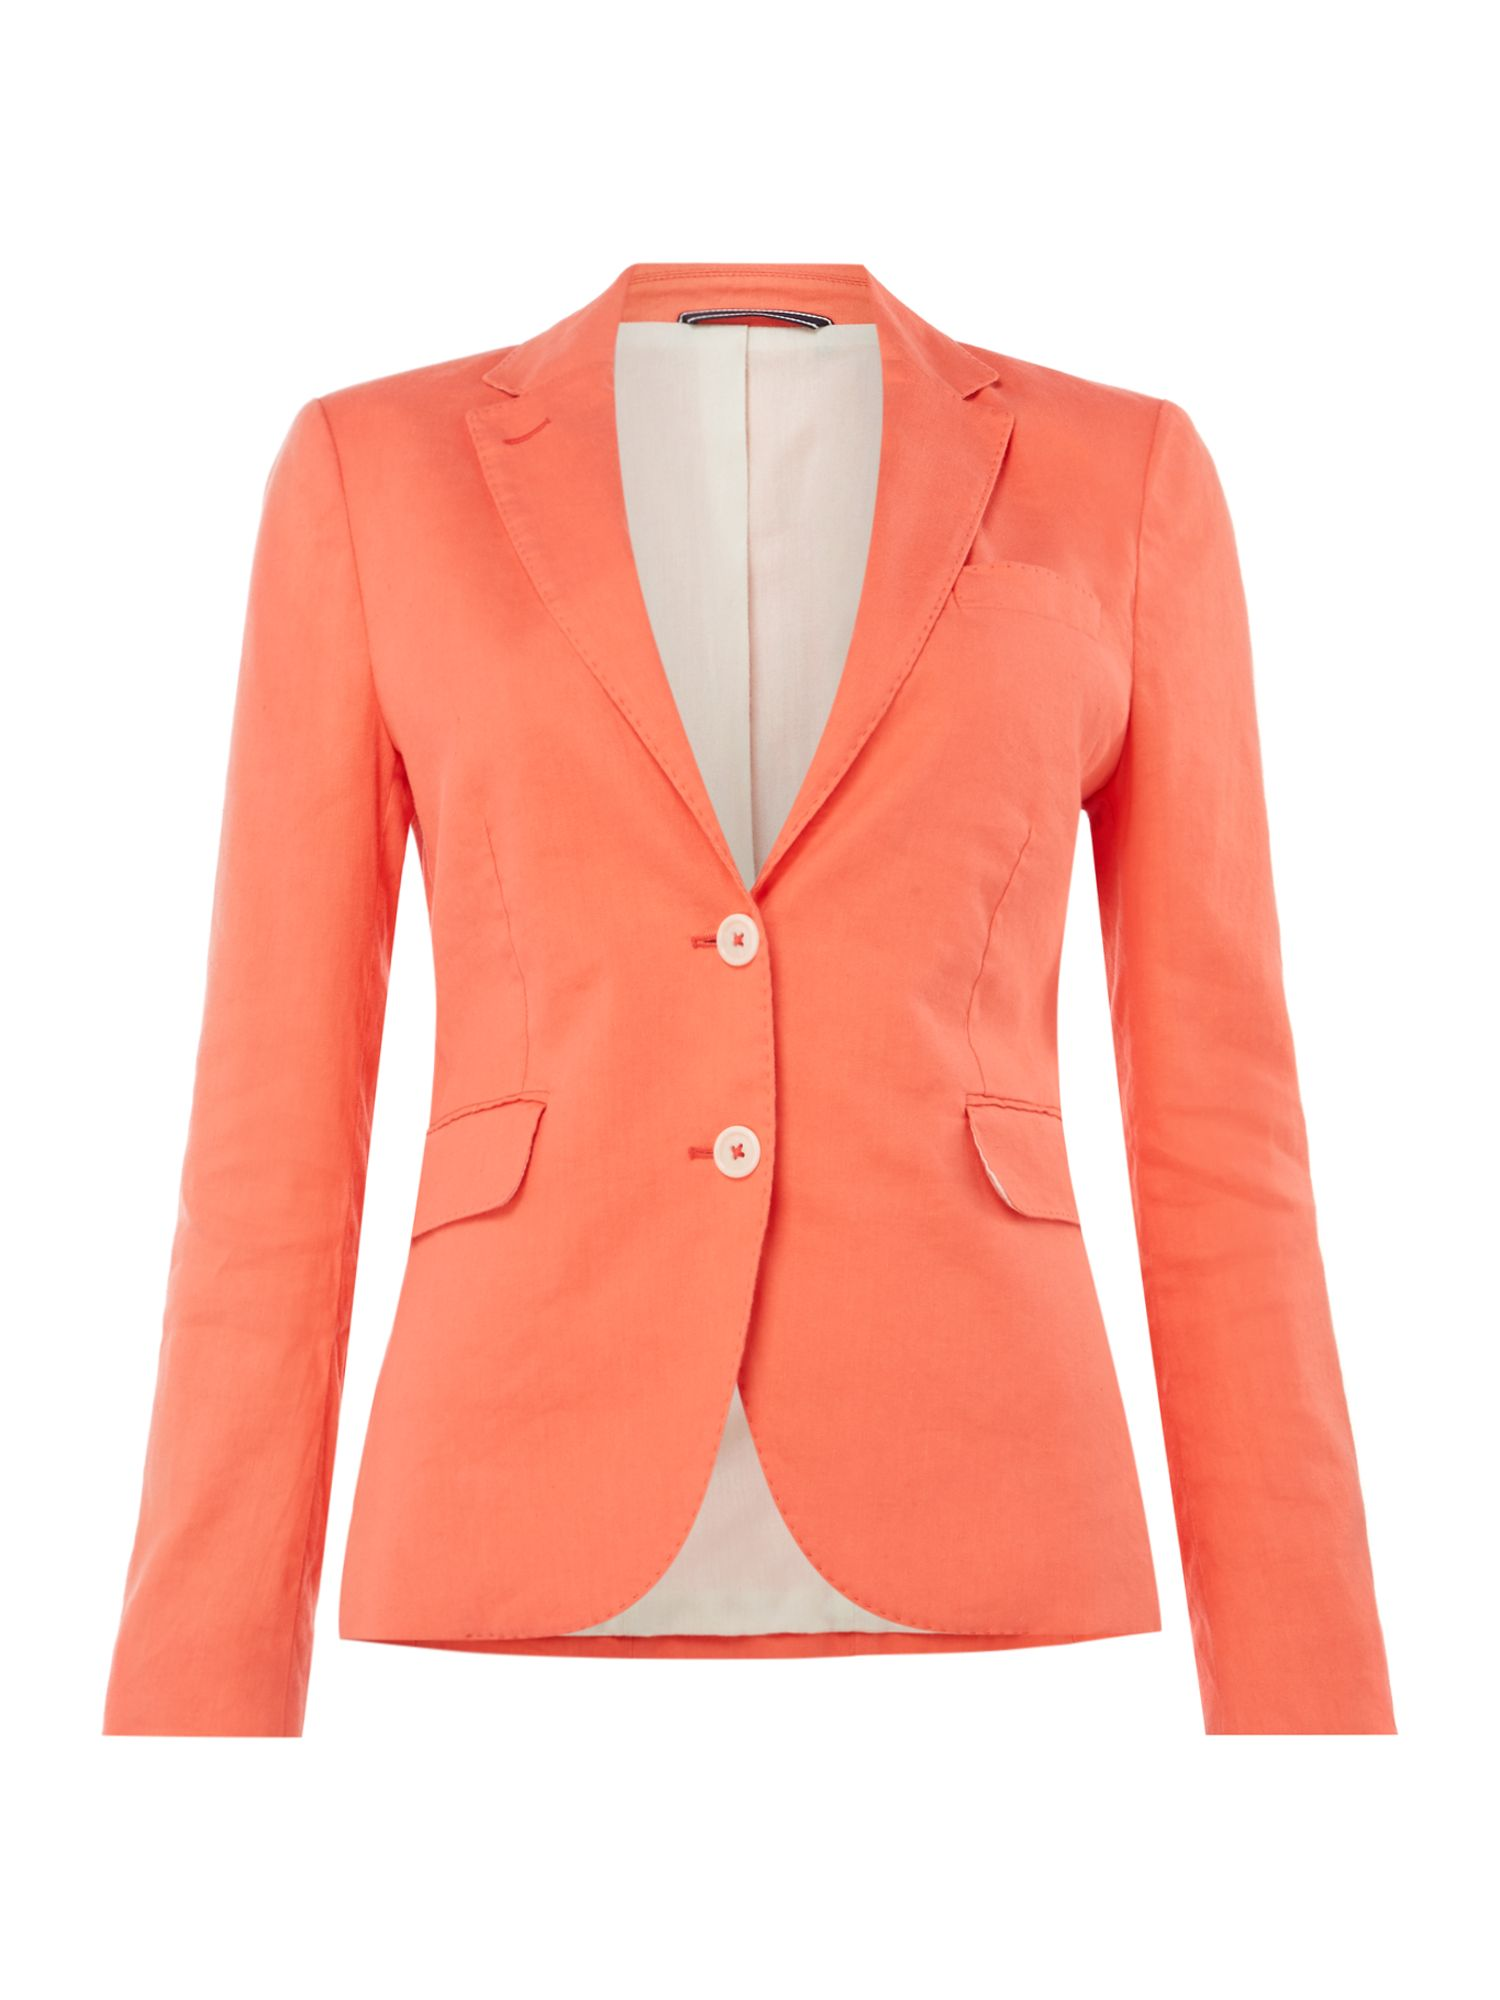 GANT Button Up Linen Blazer With Breast Pocket, Hot Coral